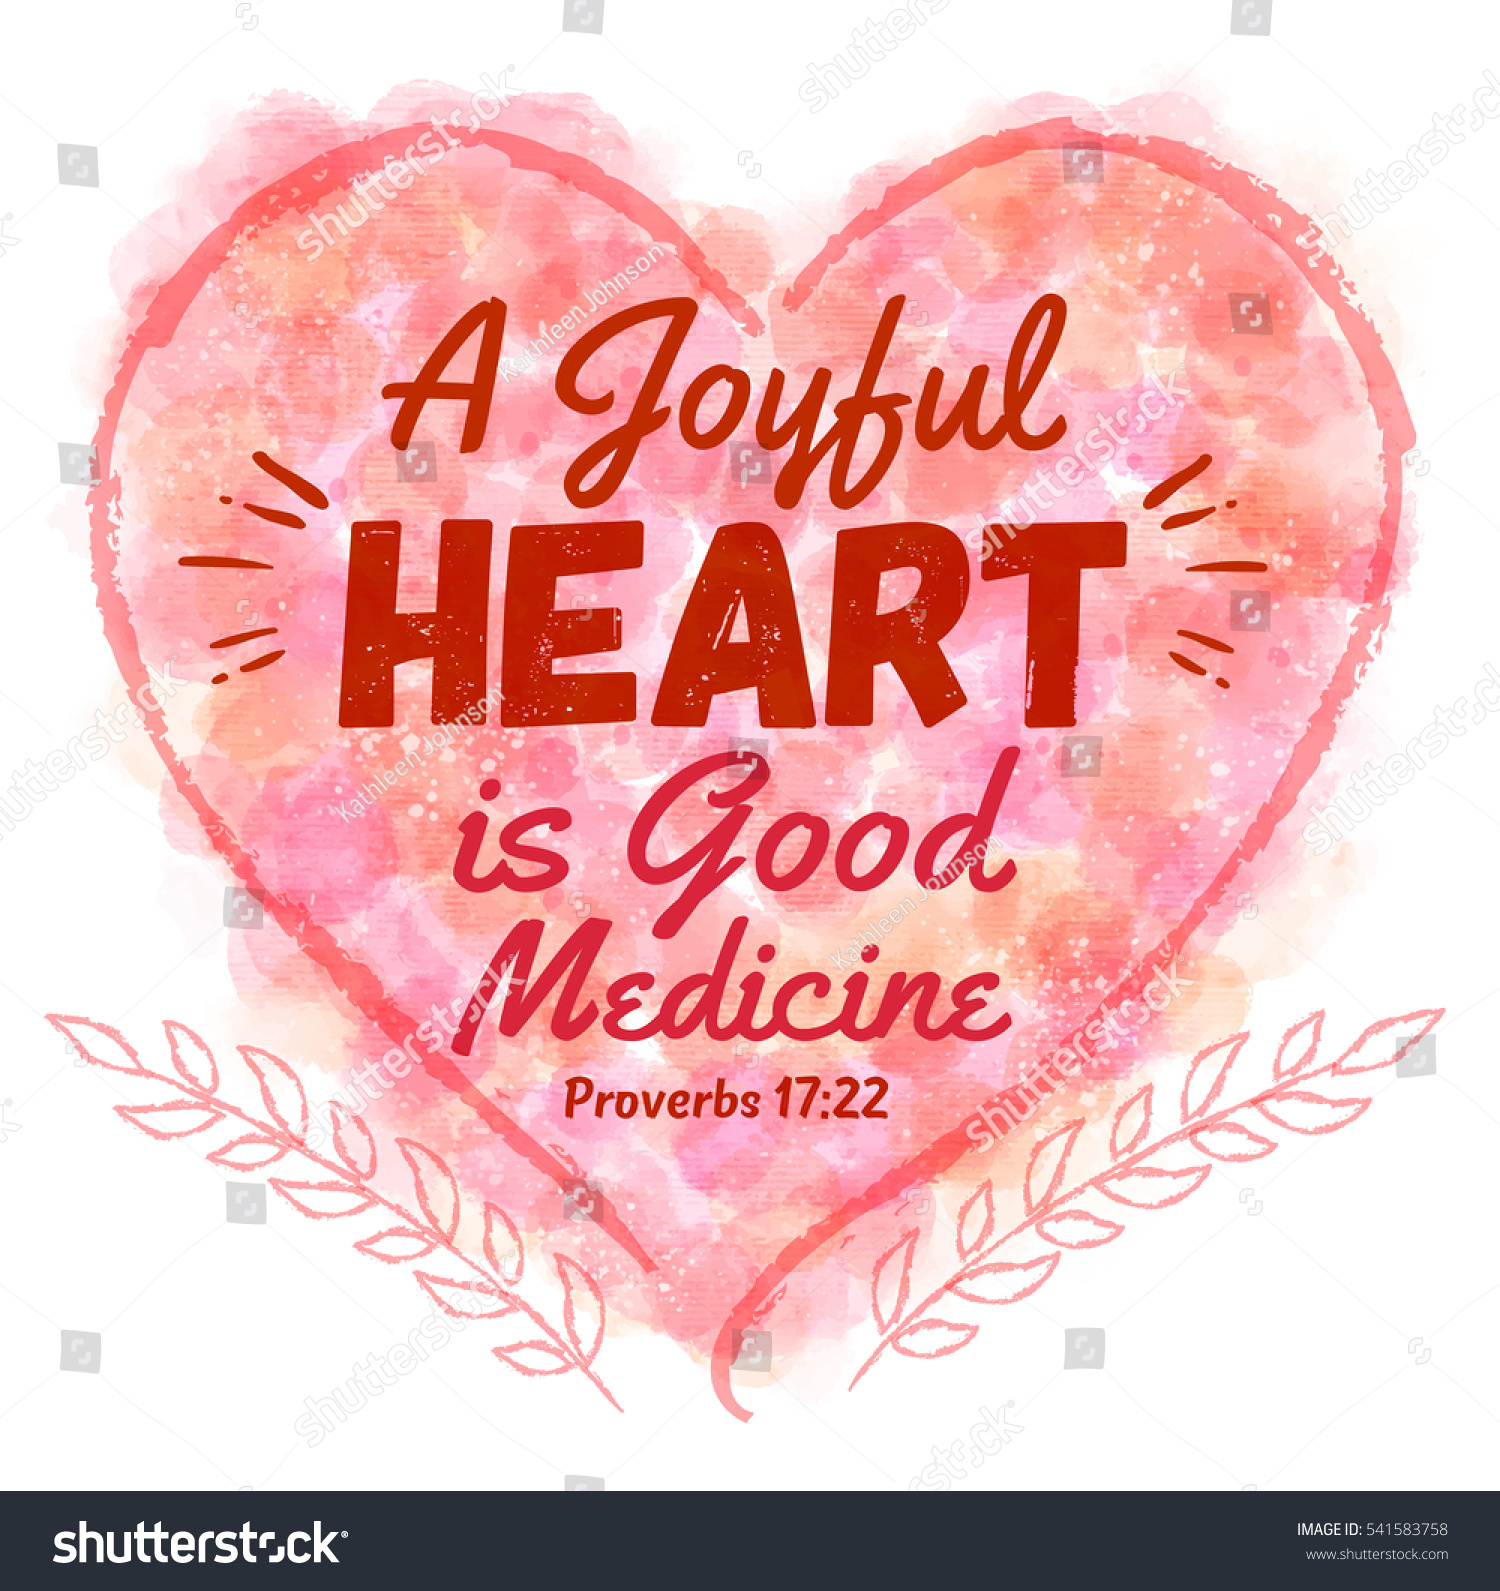 Joyful heart good medicine bible verse stock illustration 541583758 a joyful heart is good medicine bible verse art in watercolor heart with laurels from proverbs freerunsca Image collections